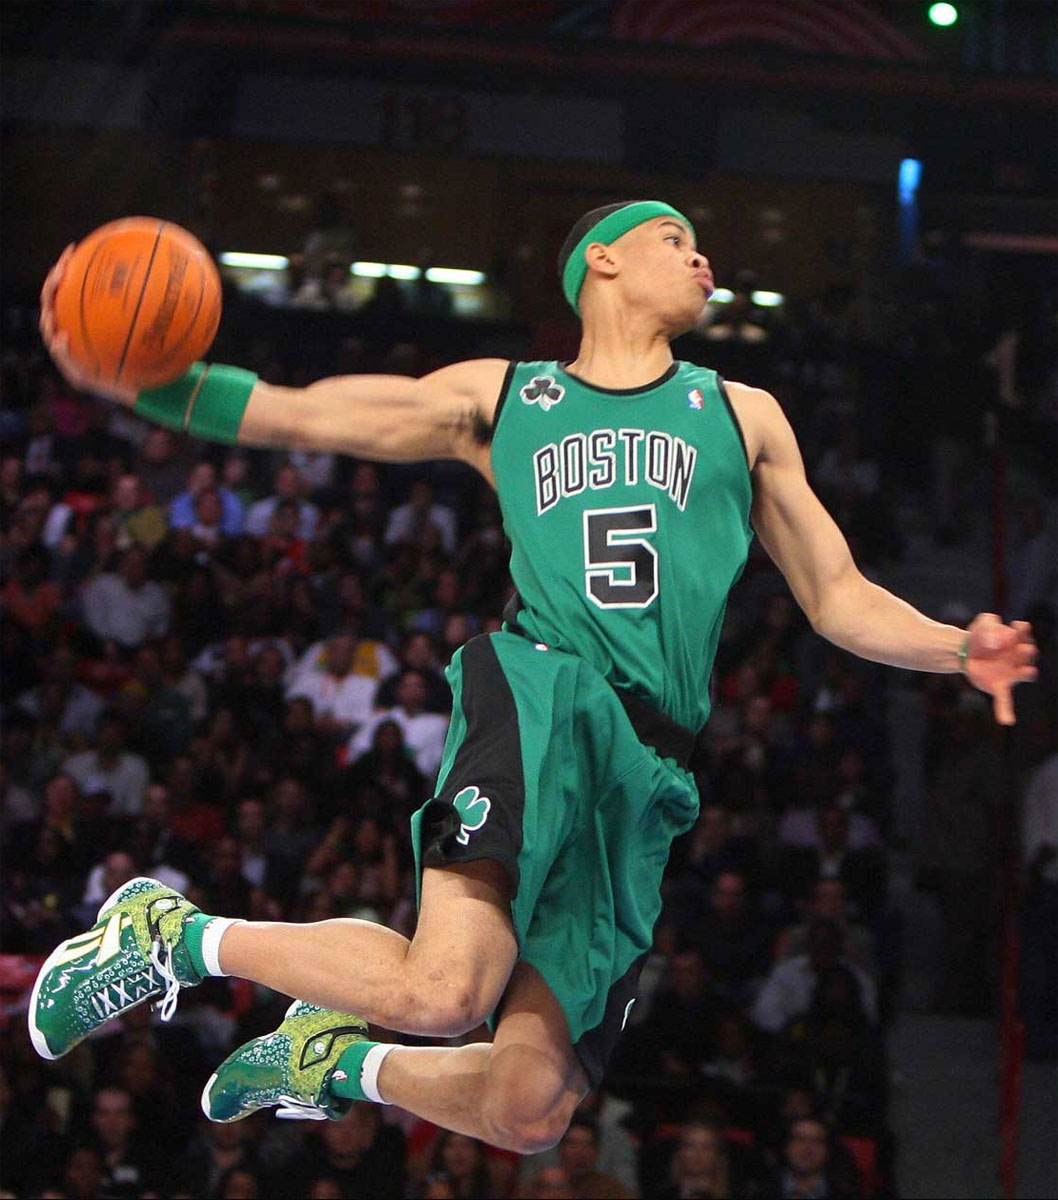 Gerald Green wearing the Reebok Pump Show Stopper G2 in the 2007 NBA Dunk Contest